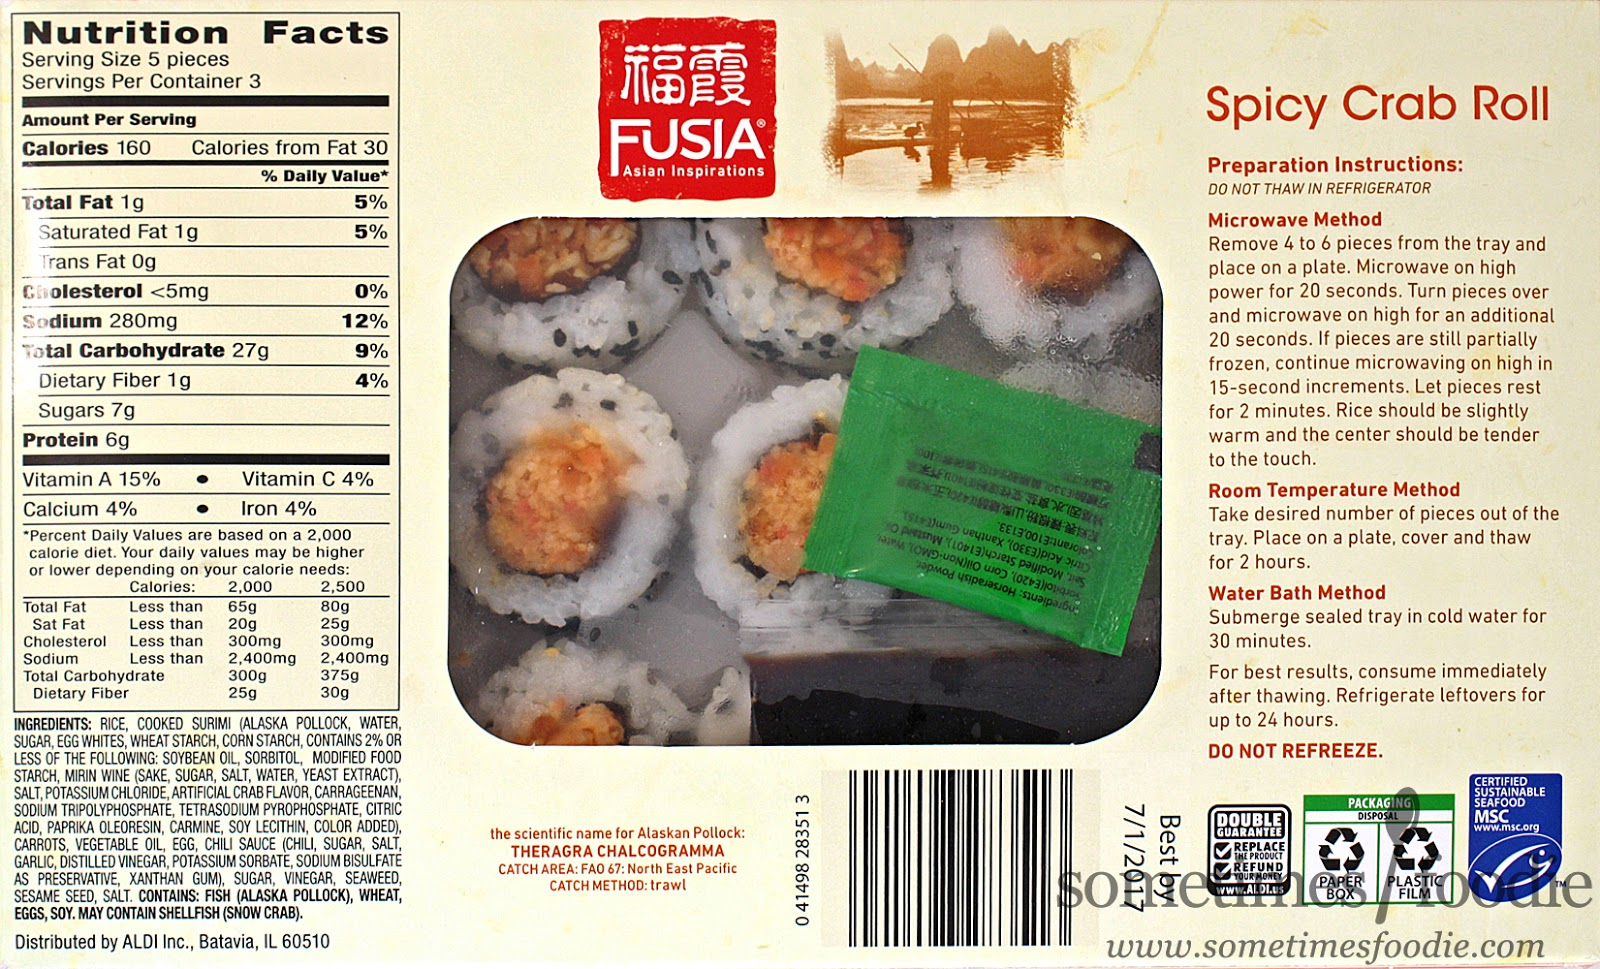 Sometimes foodie fusia spicy crab roll aldi for Frozen fish for sushi